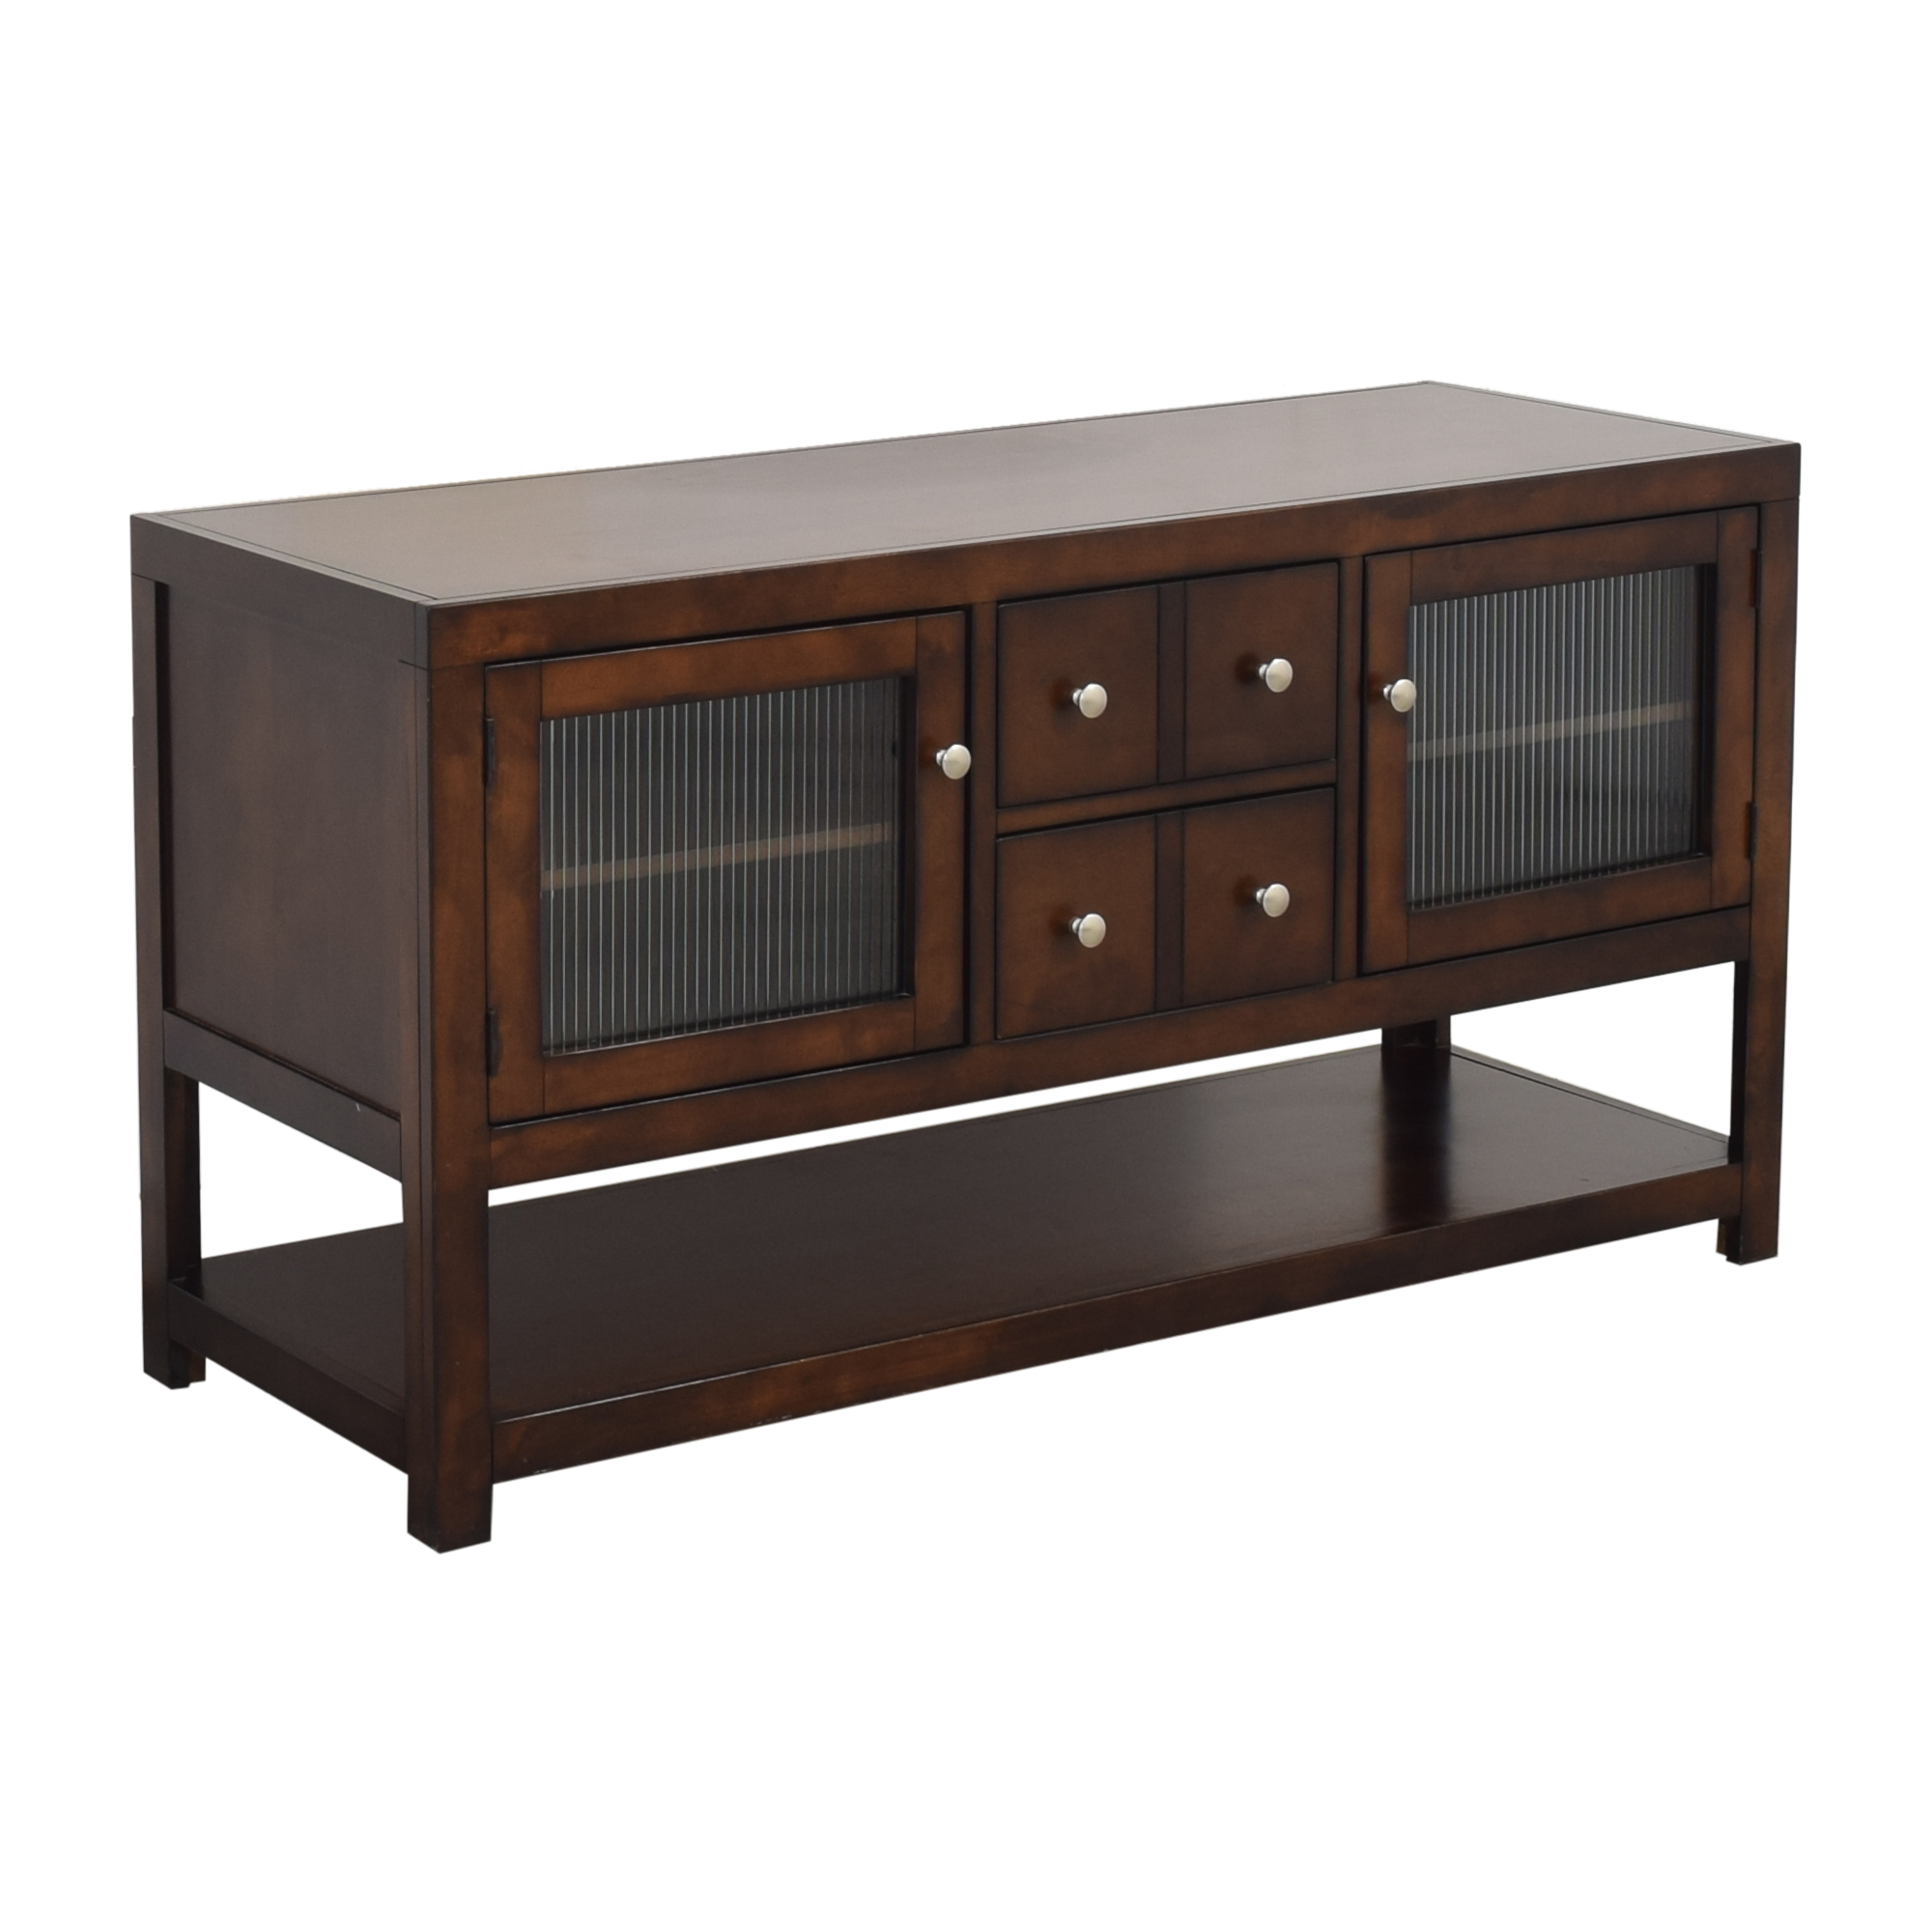 shop Raymour & Flanigan Raymour and Flanigan Media Console with Cabinets online